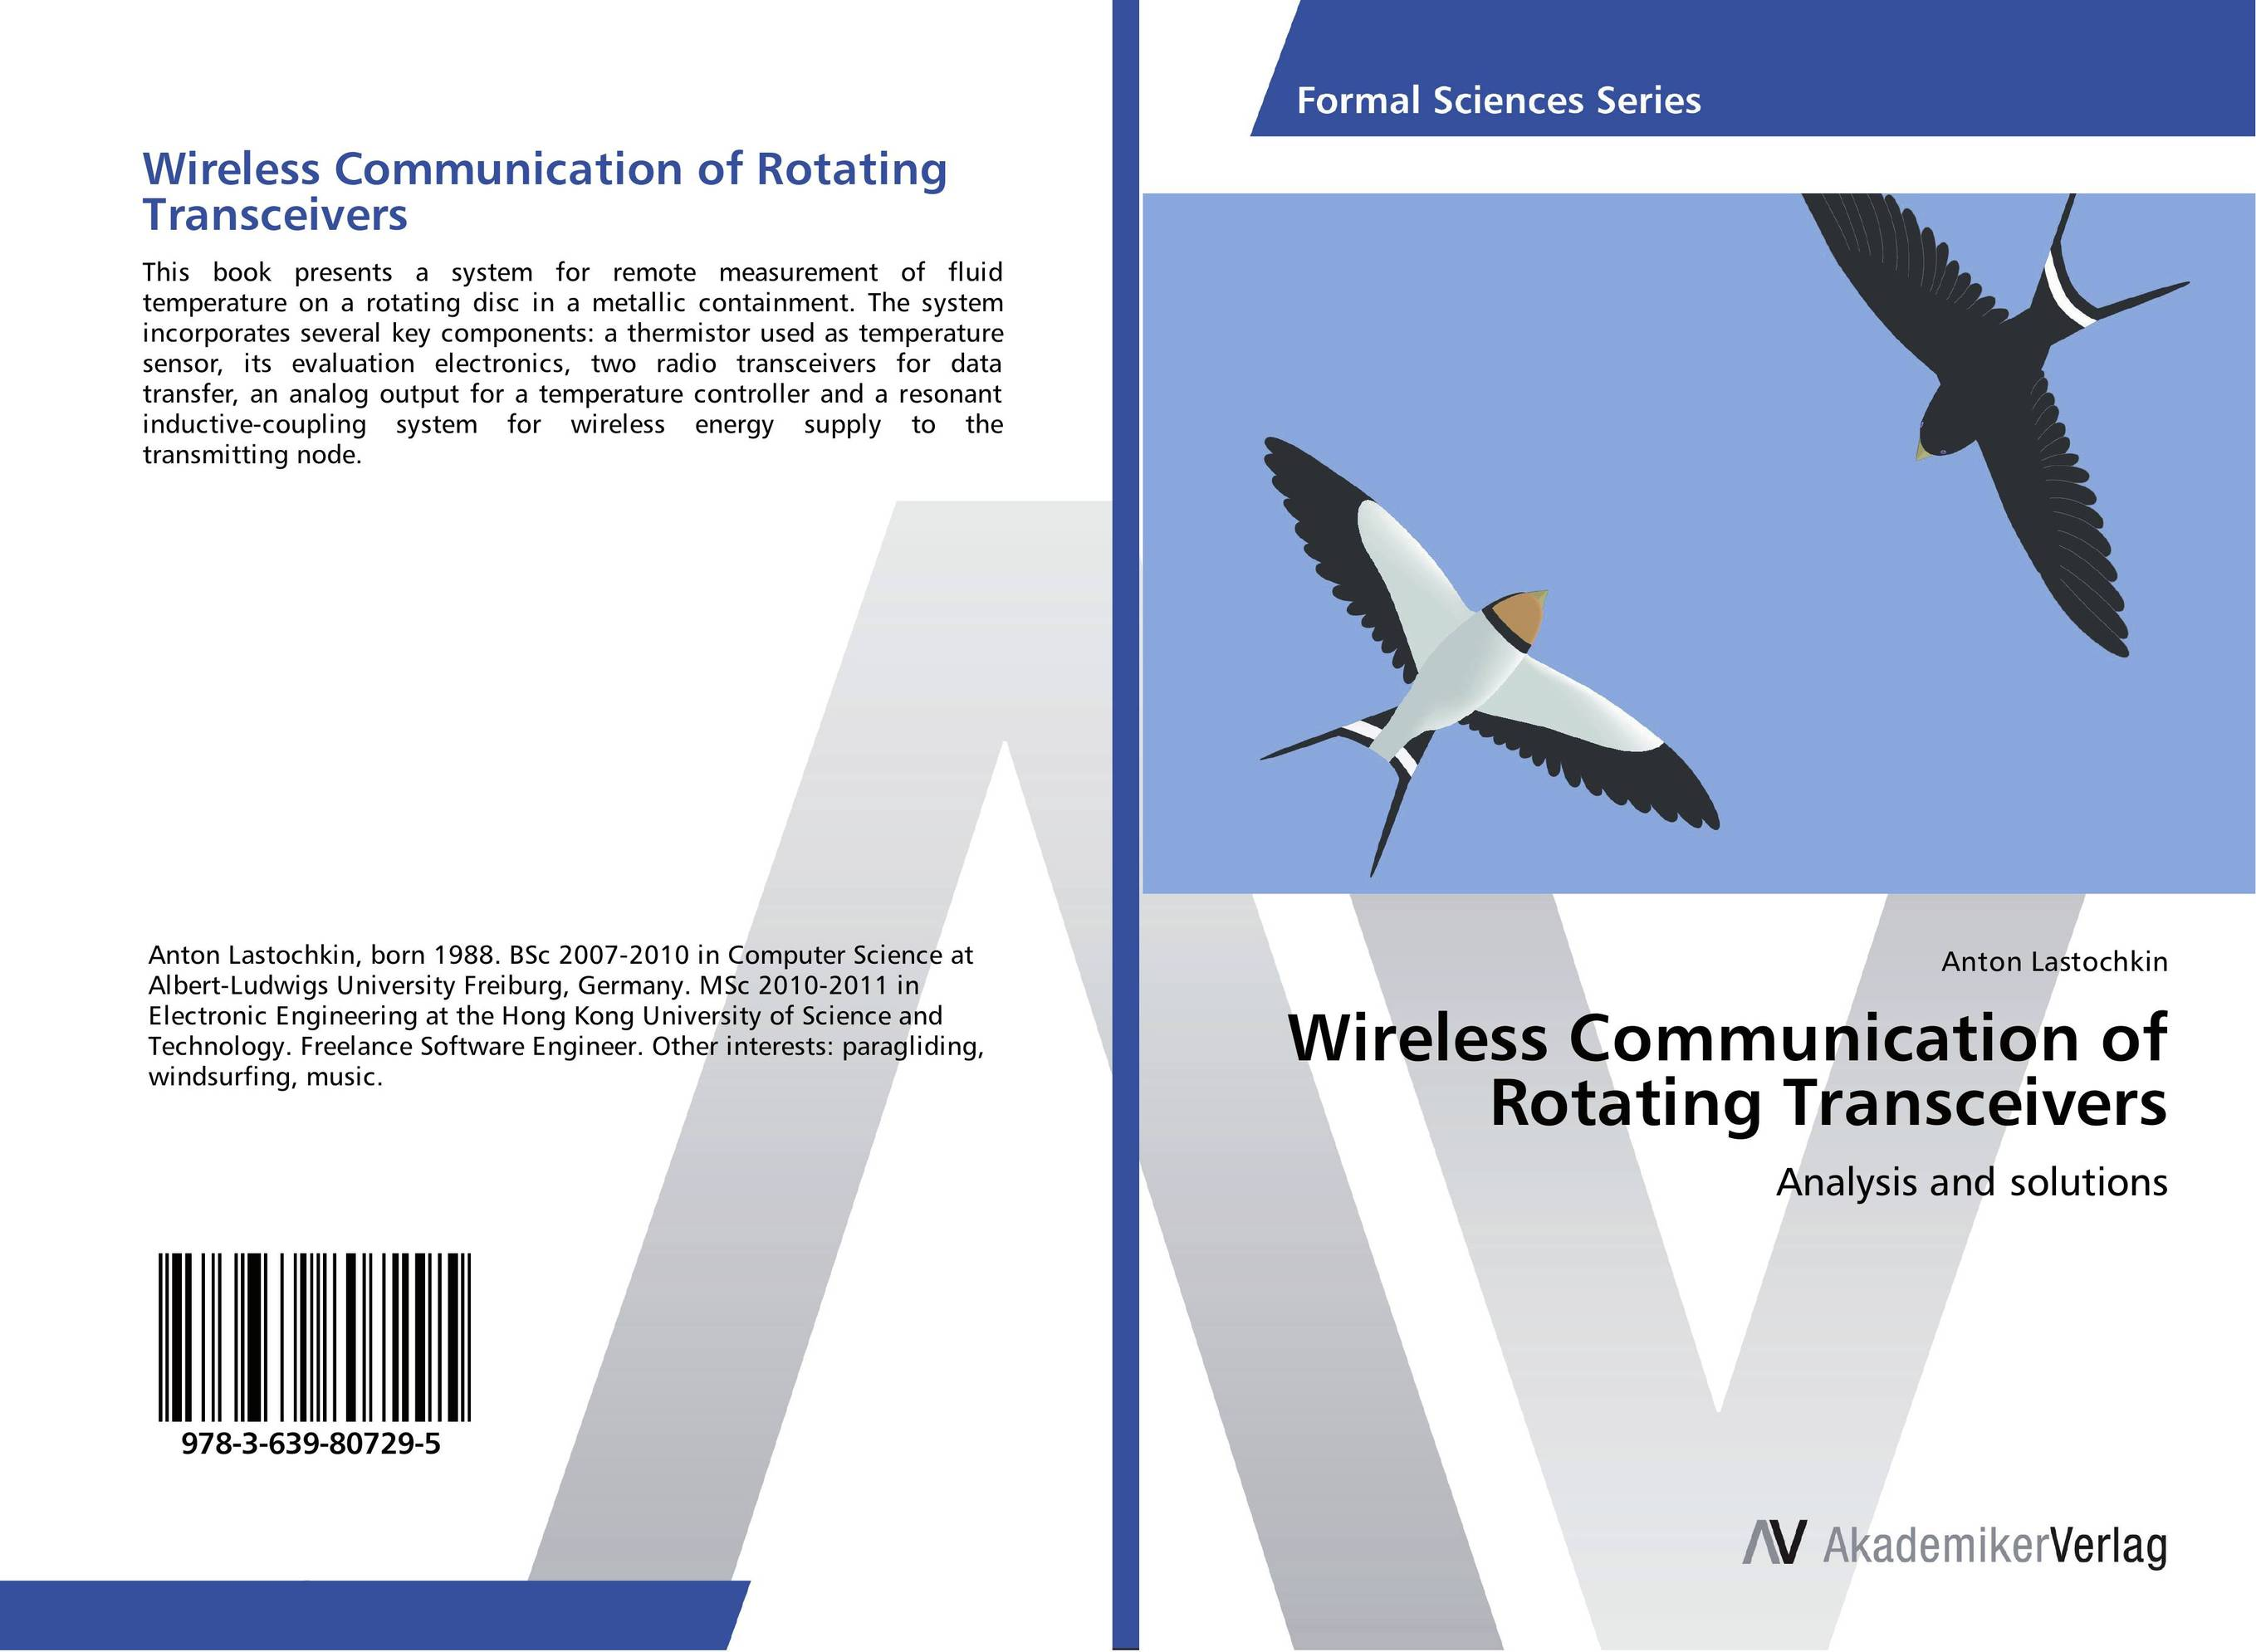 Wireless Communication of Rotating Transceivers abdul basit mobility model for optical wireless communication system